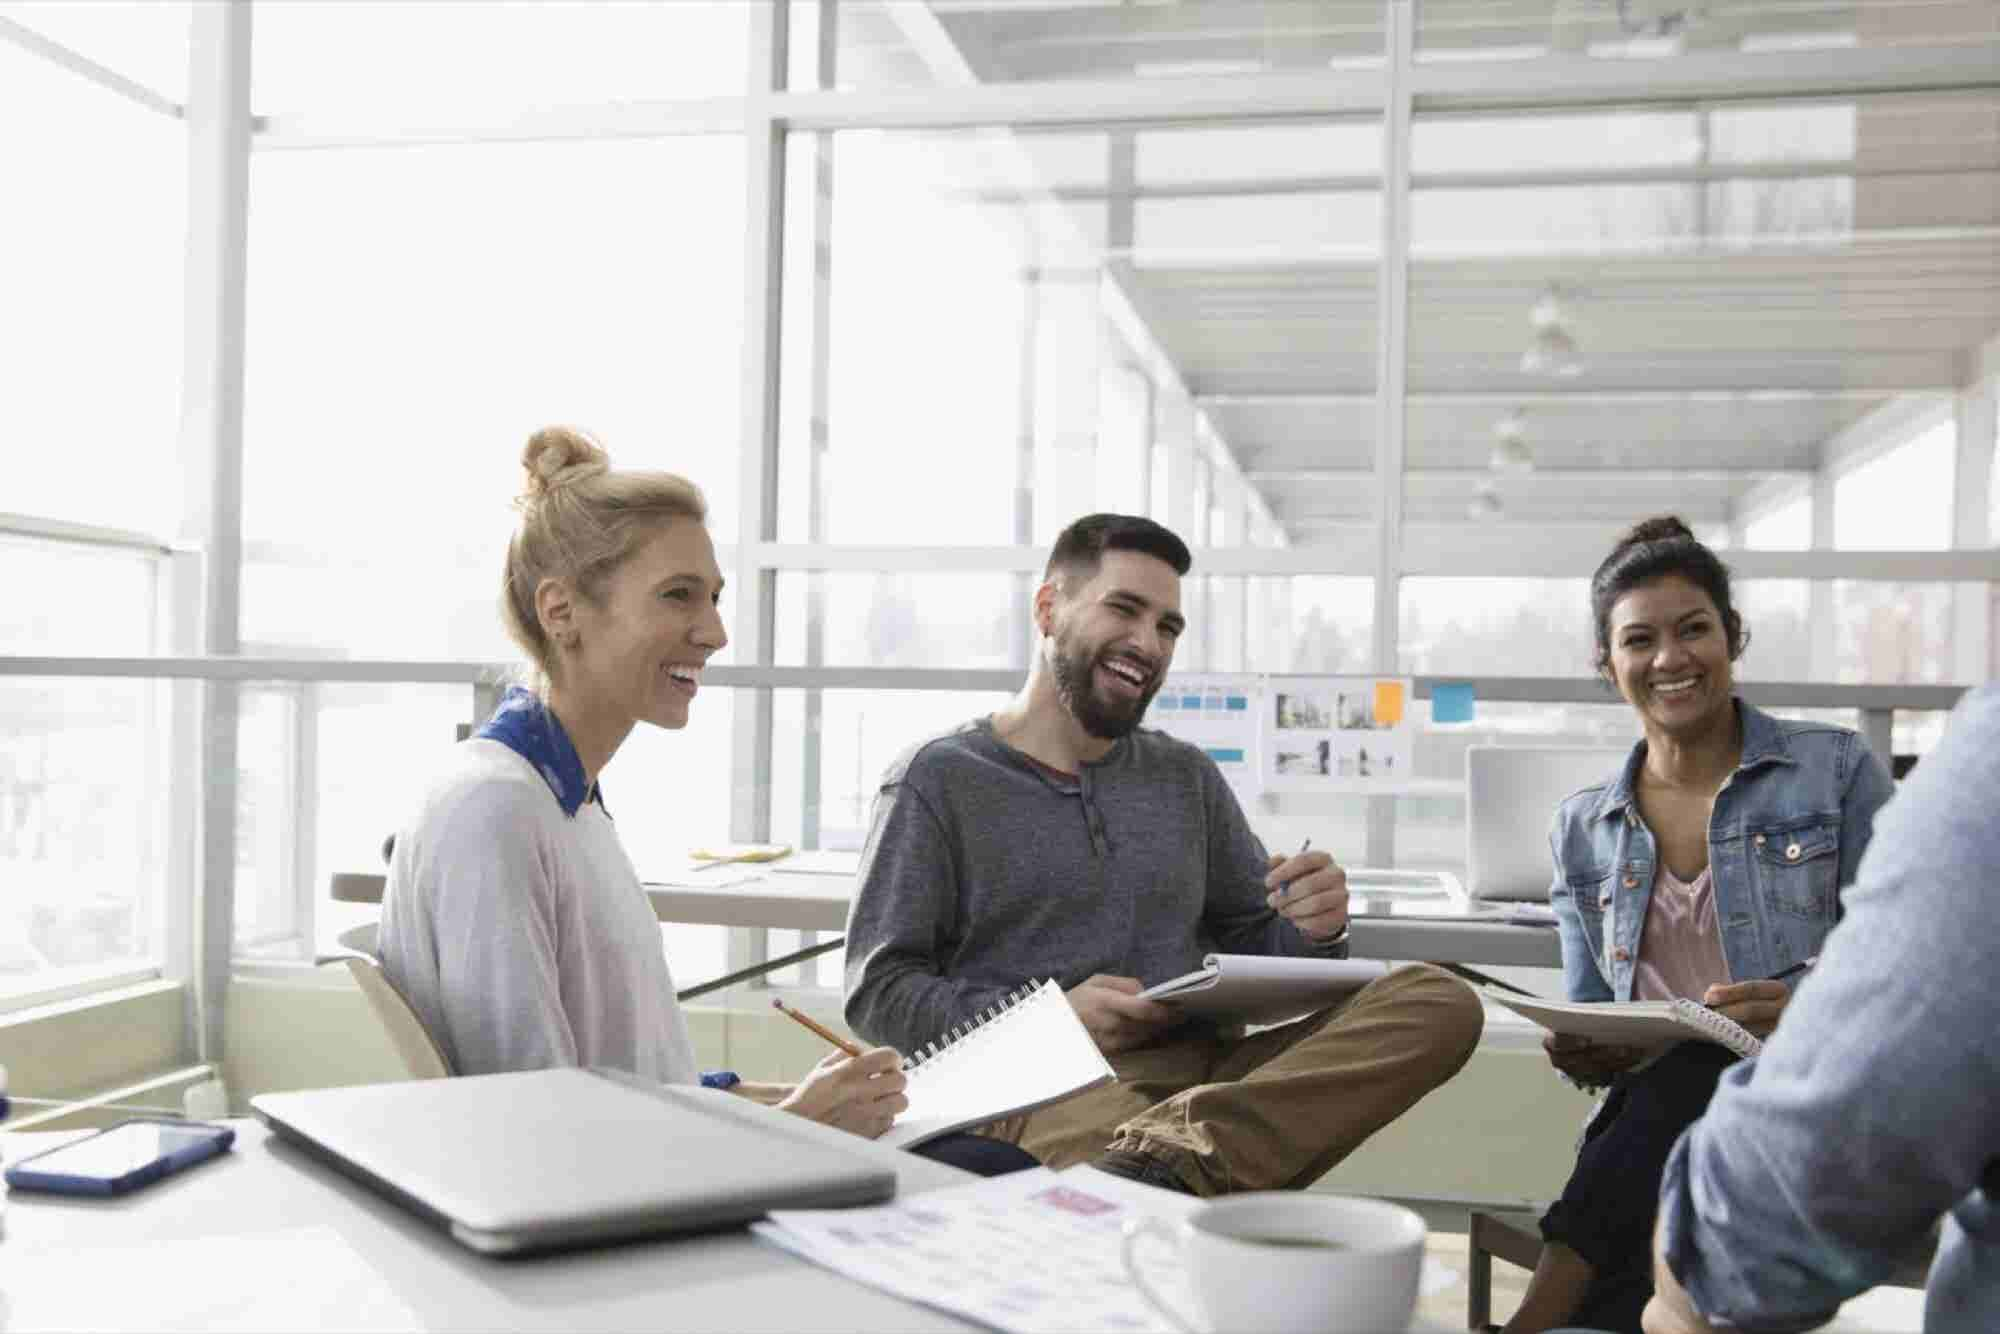 5 Ways Leaders Can Make Their Teams Happier and Healthier Without Spending Much